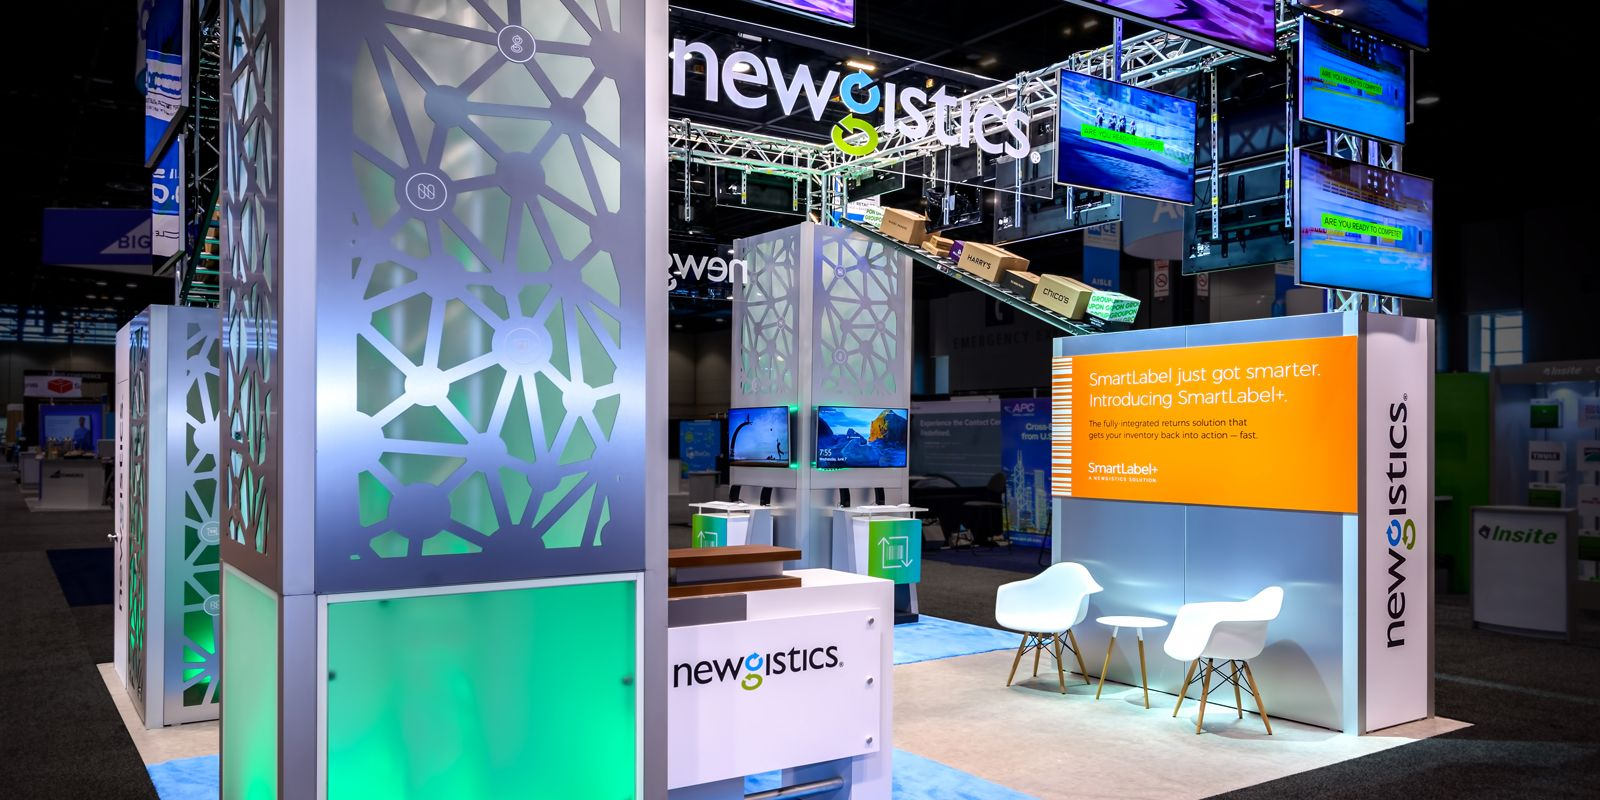 Hill & Partners Rental Branded Environment Trade Show Exhibit for Newgistics